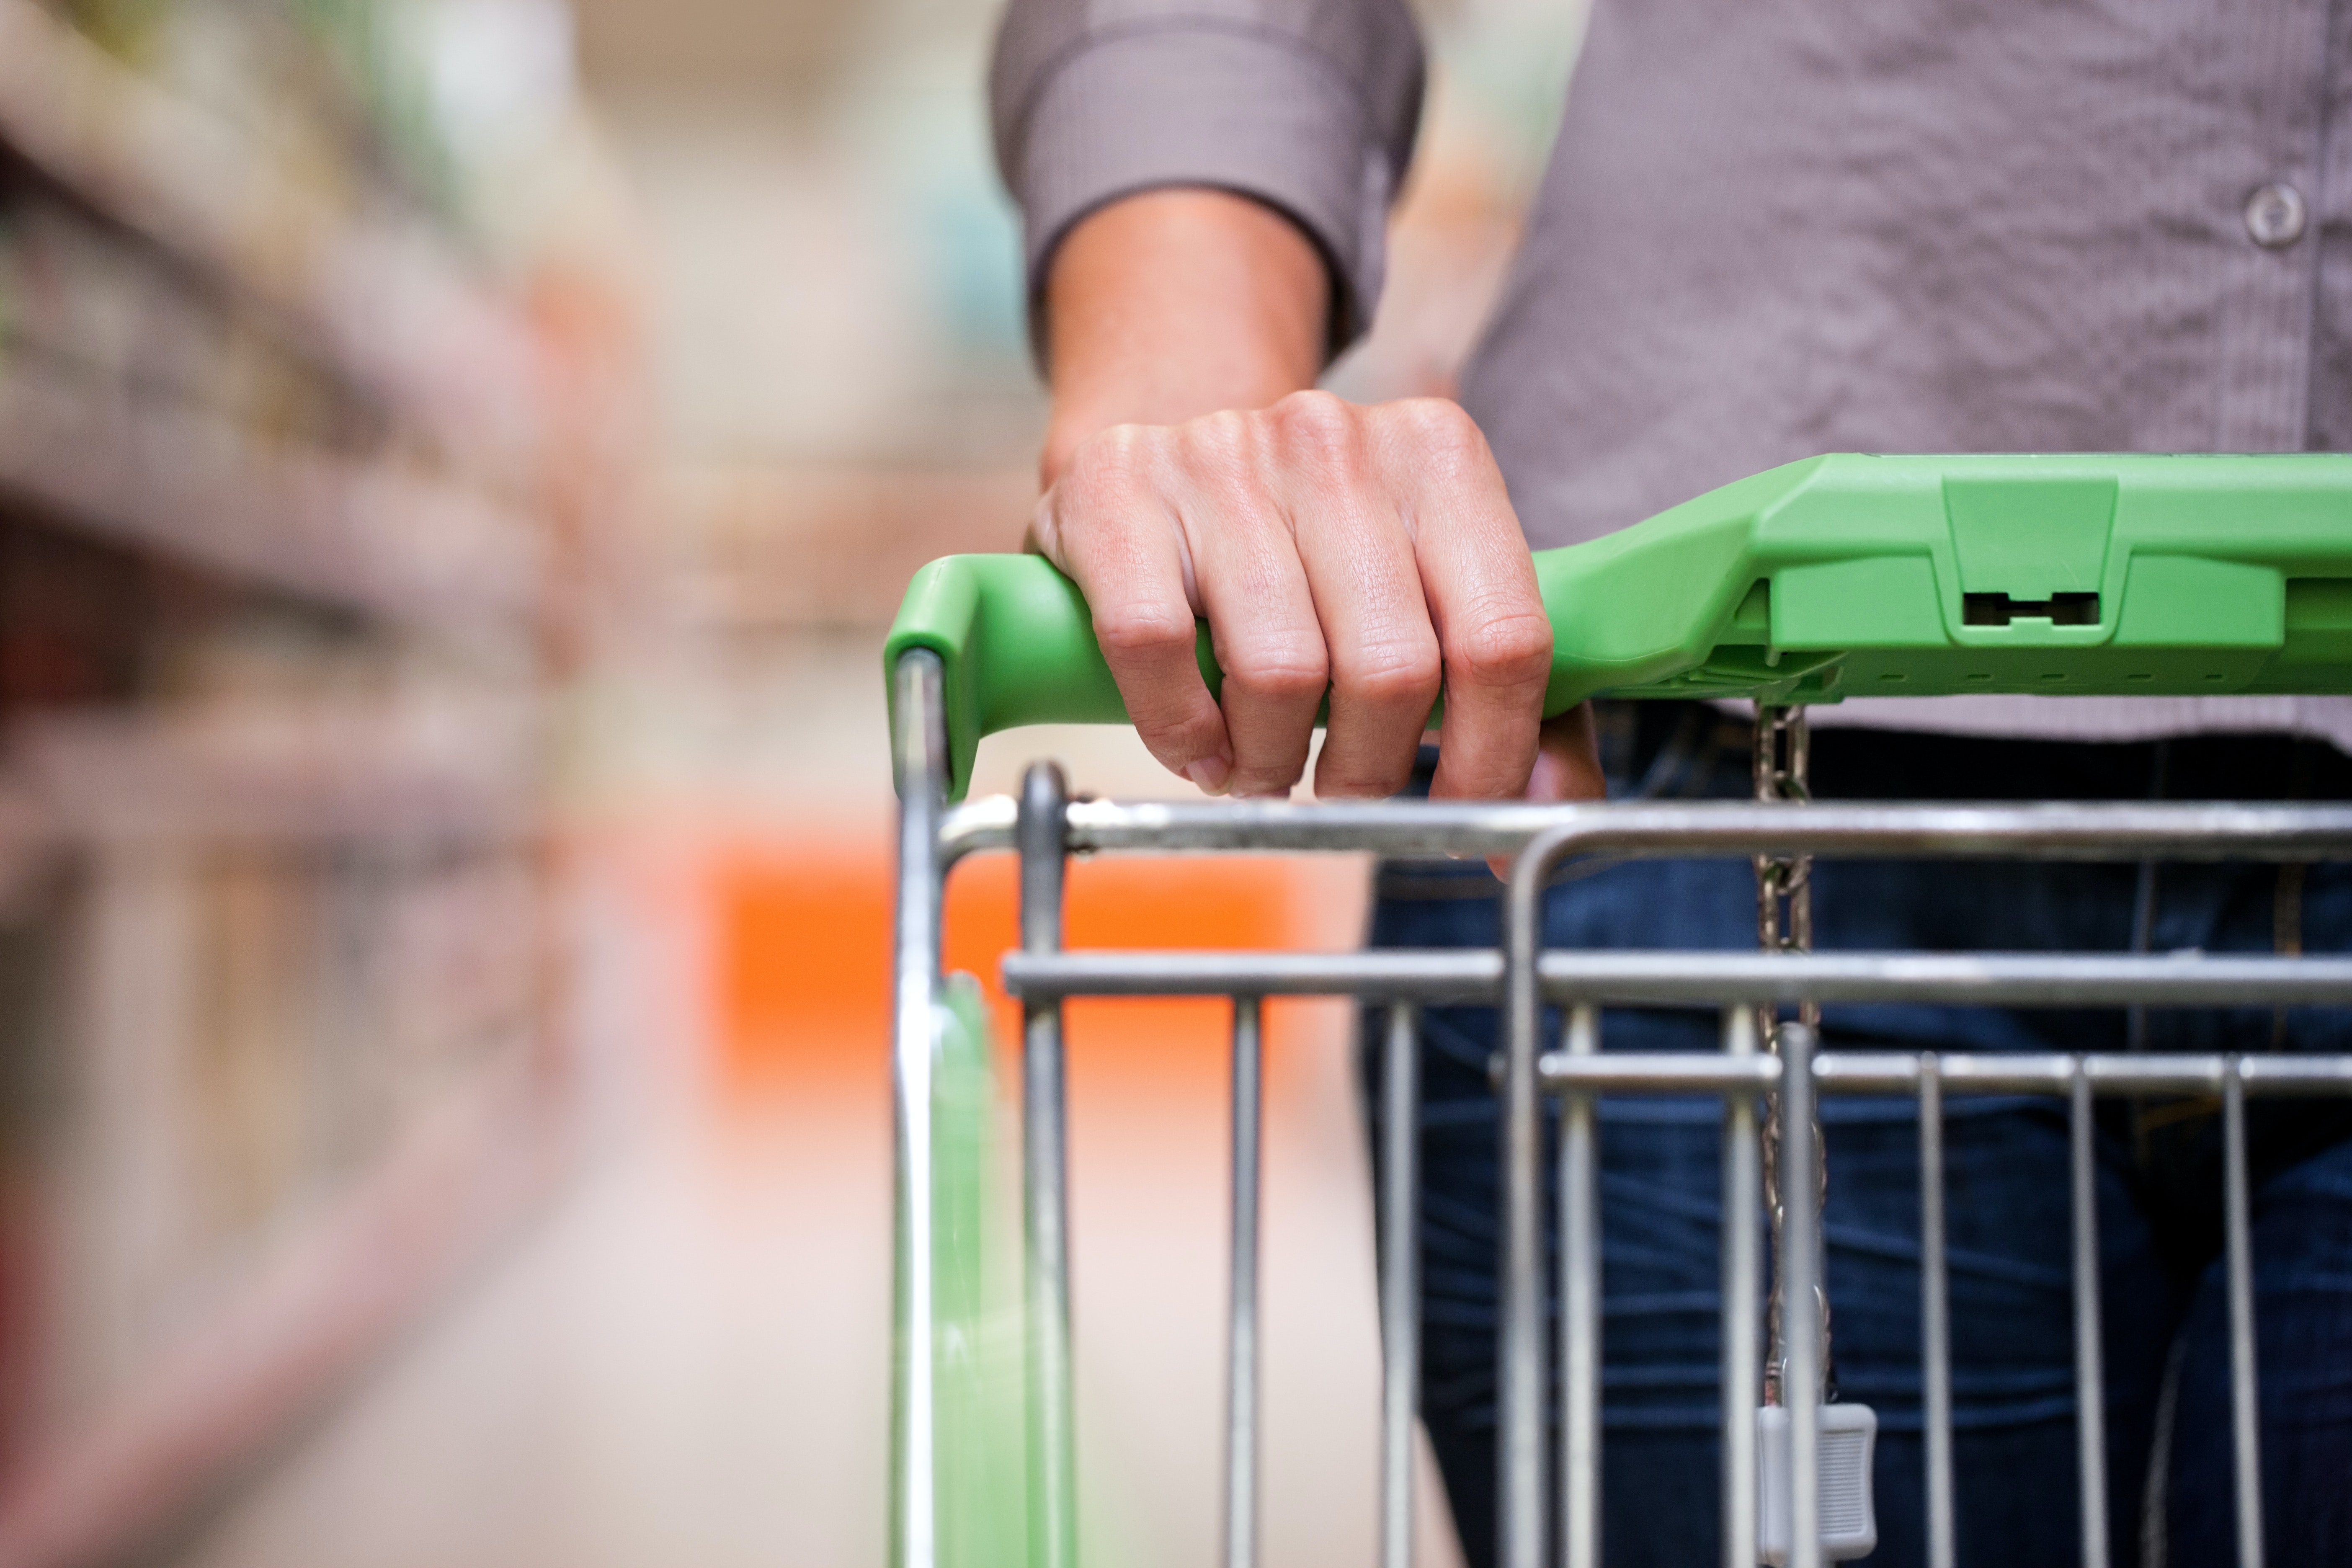 ACCC's inquiry into supermarket bullying misses the real issue of duopoly power